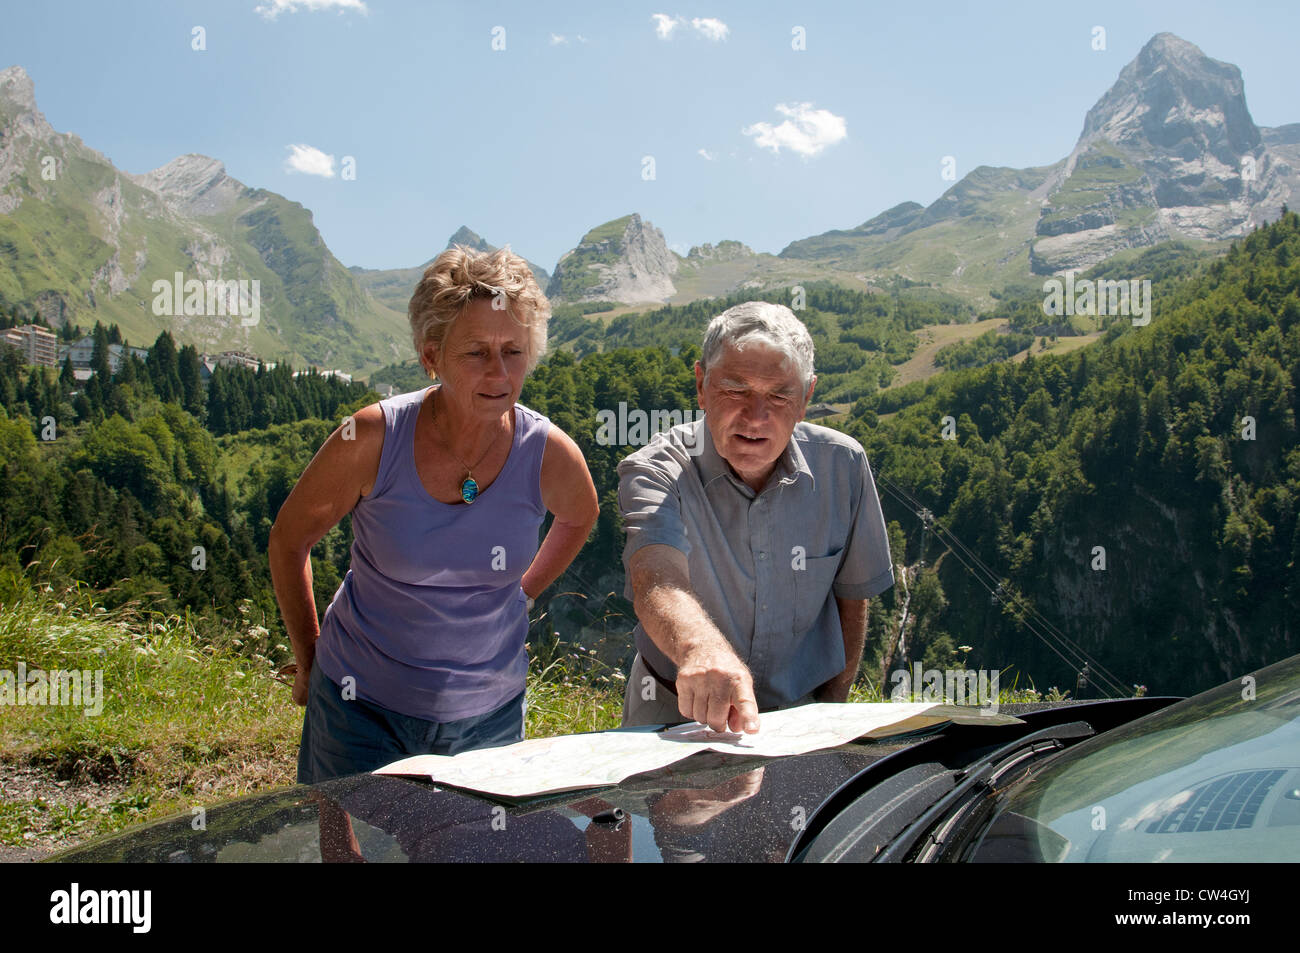 Map Of France With Mountains.Motorists Map Reading With A Backdrop Of Mountains South West France